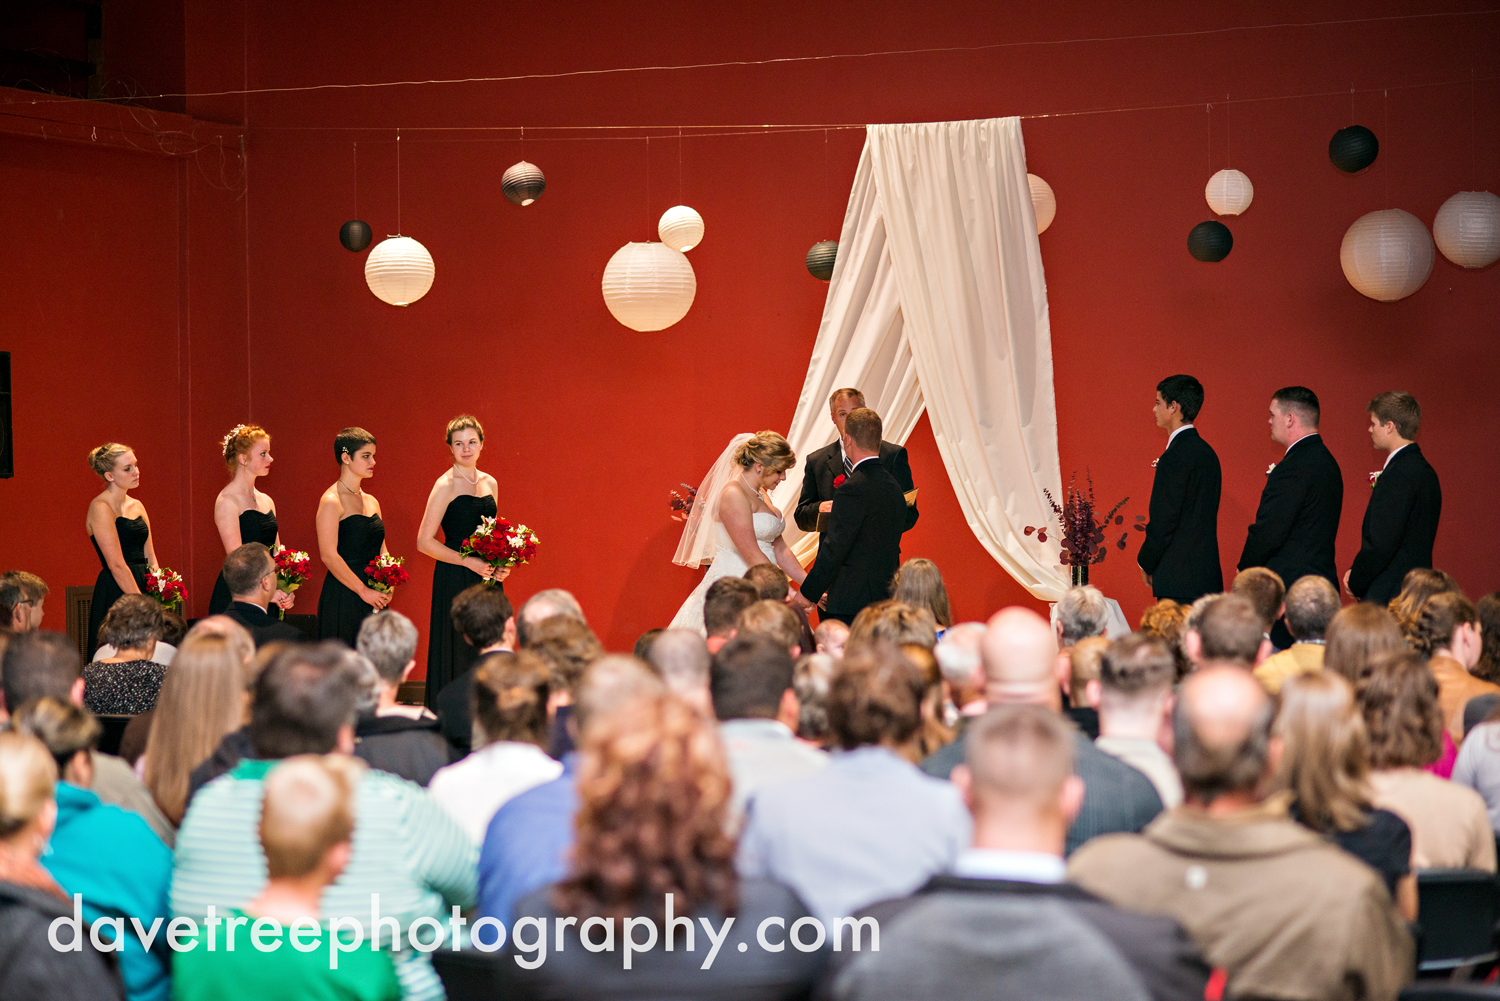 holland_wedding_photographer_39.jpg